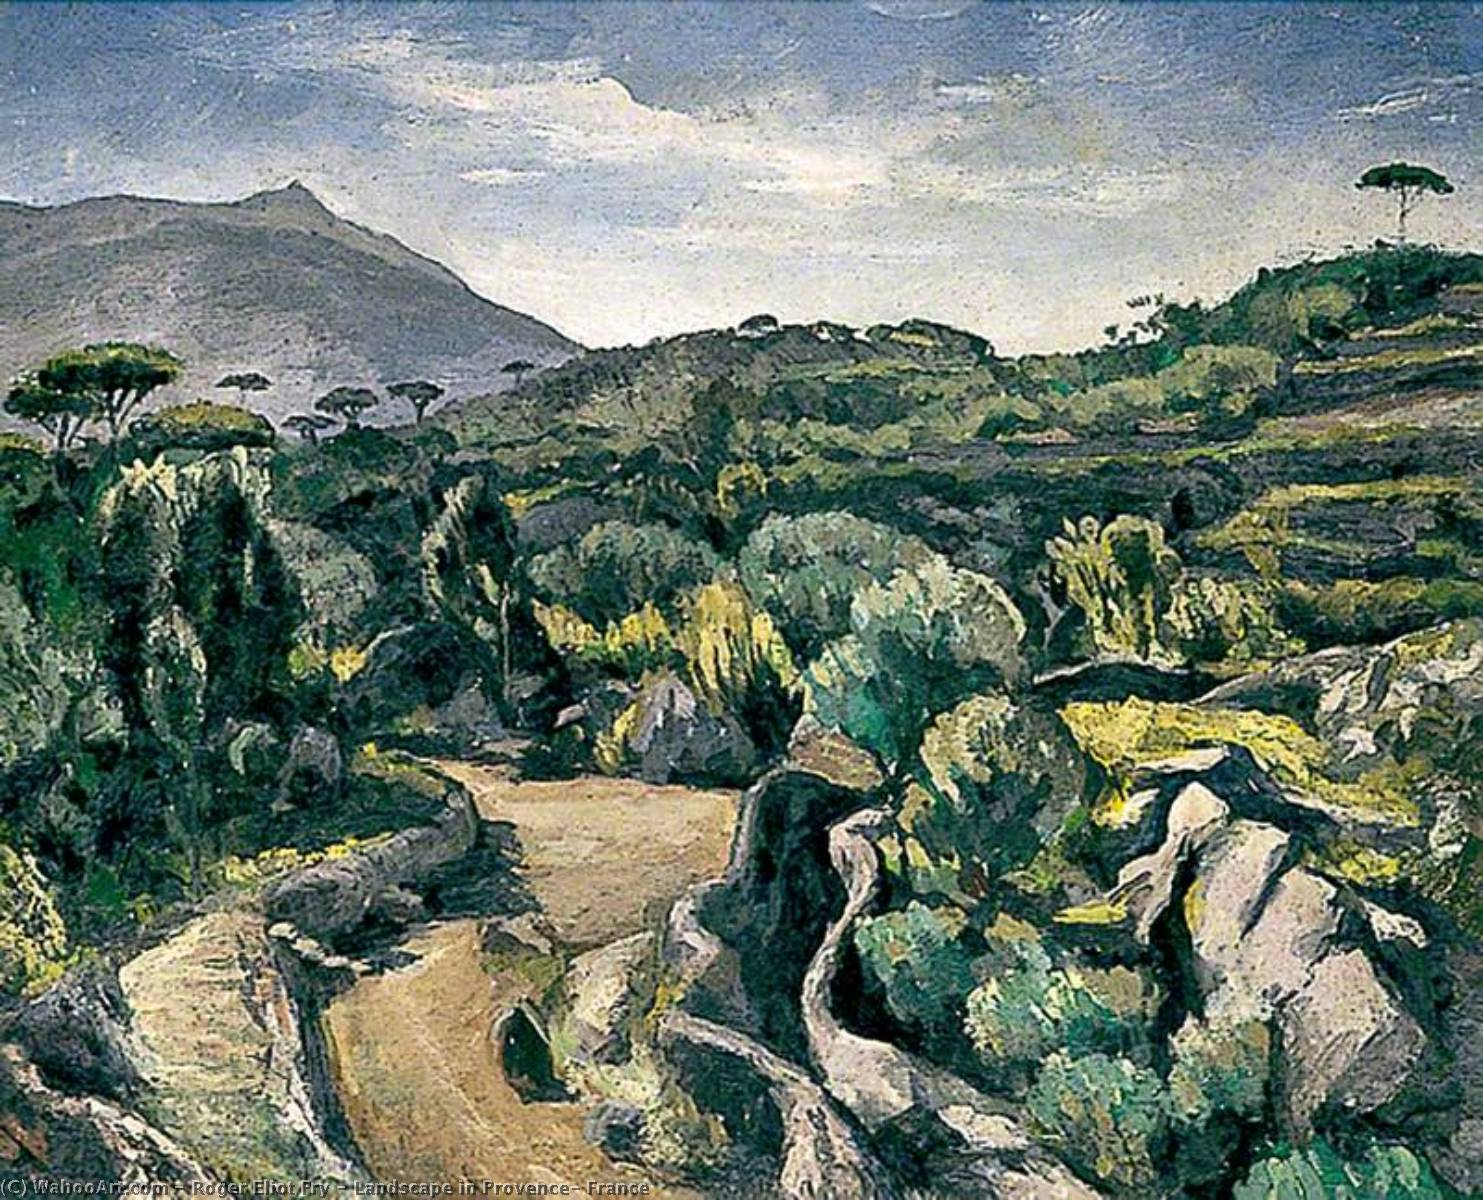 famous painting Landscape in Provence, France of Roger Eliot Fry